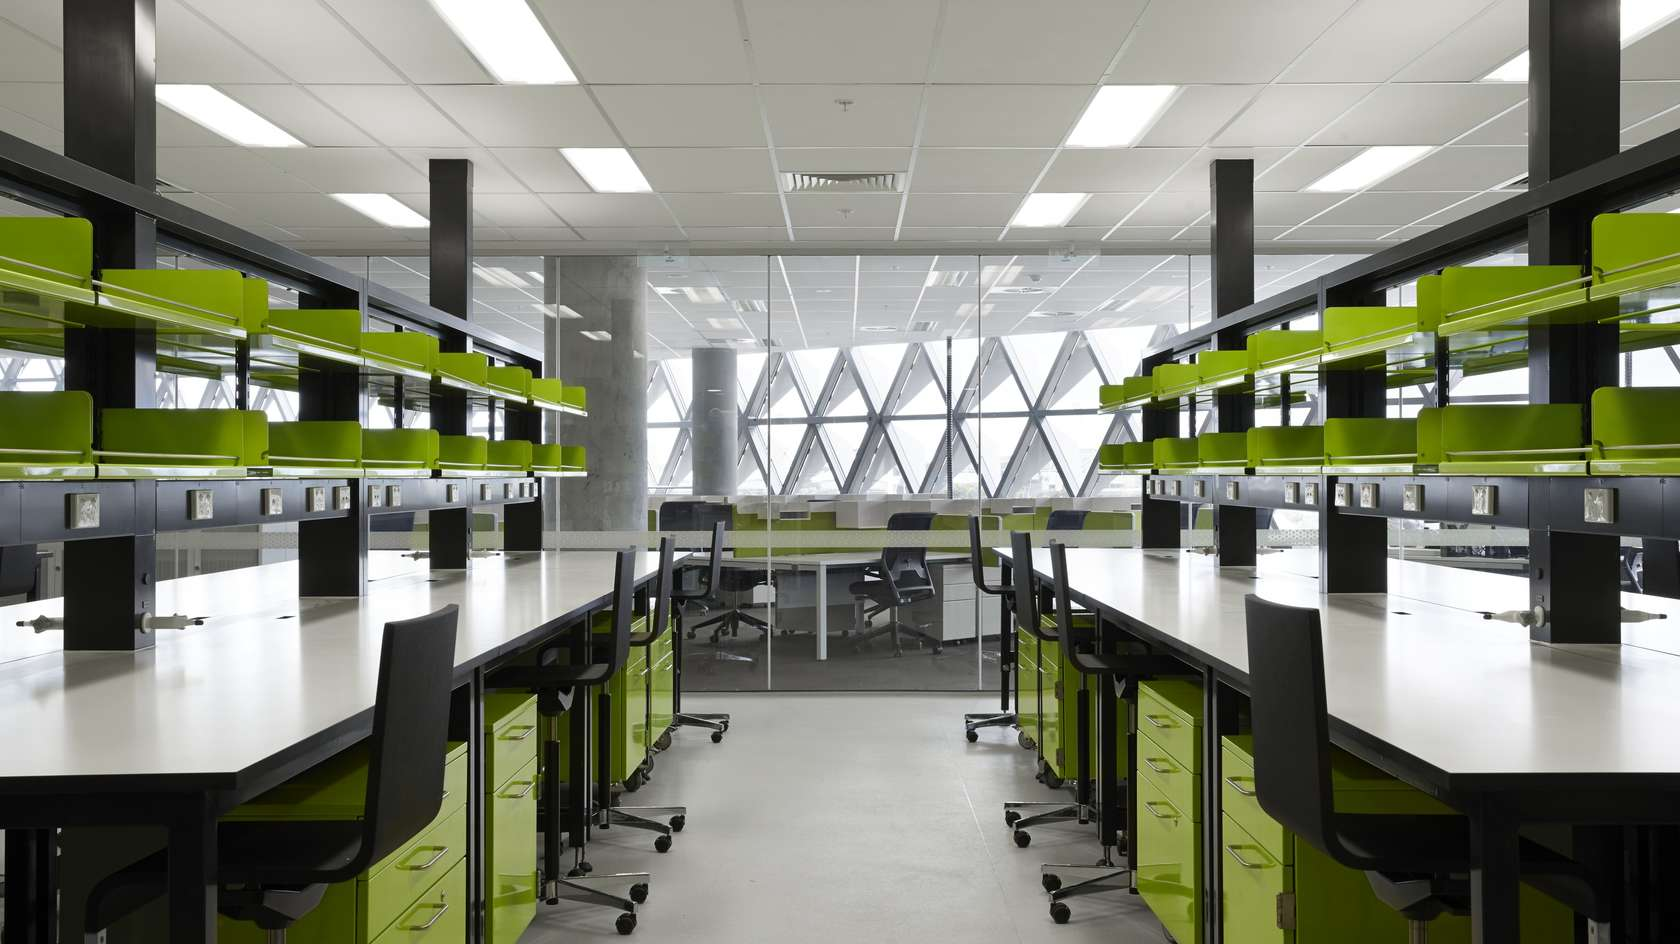 South australian health and medical research institute for Office design research